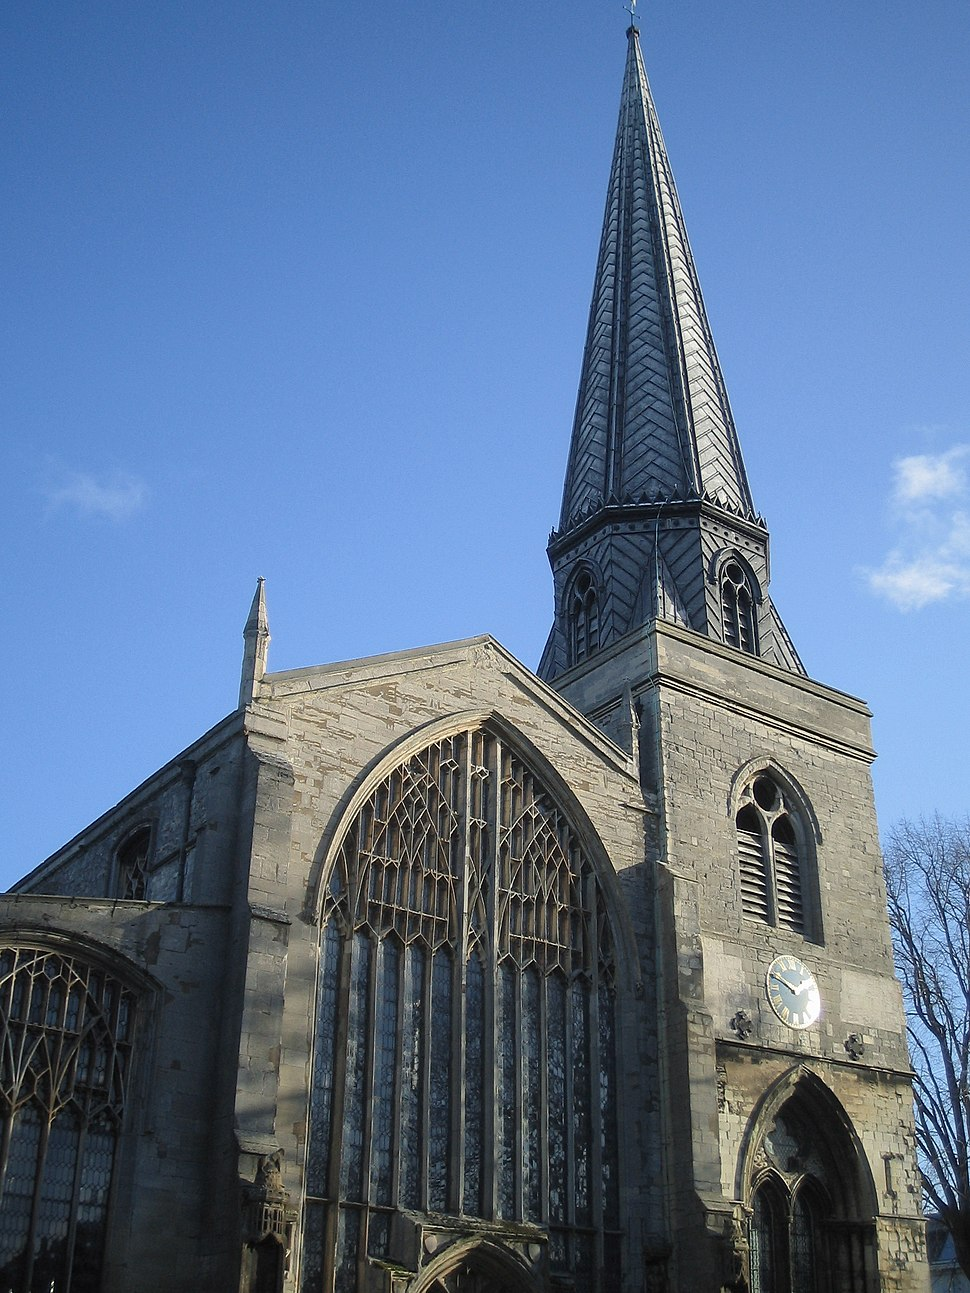 Kings-lynn-st-nich-chapel